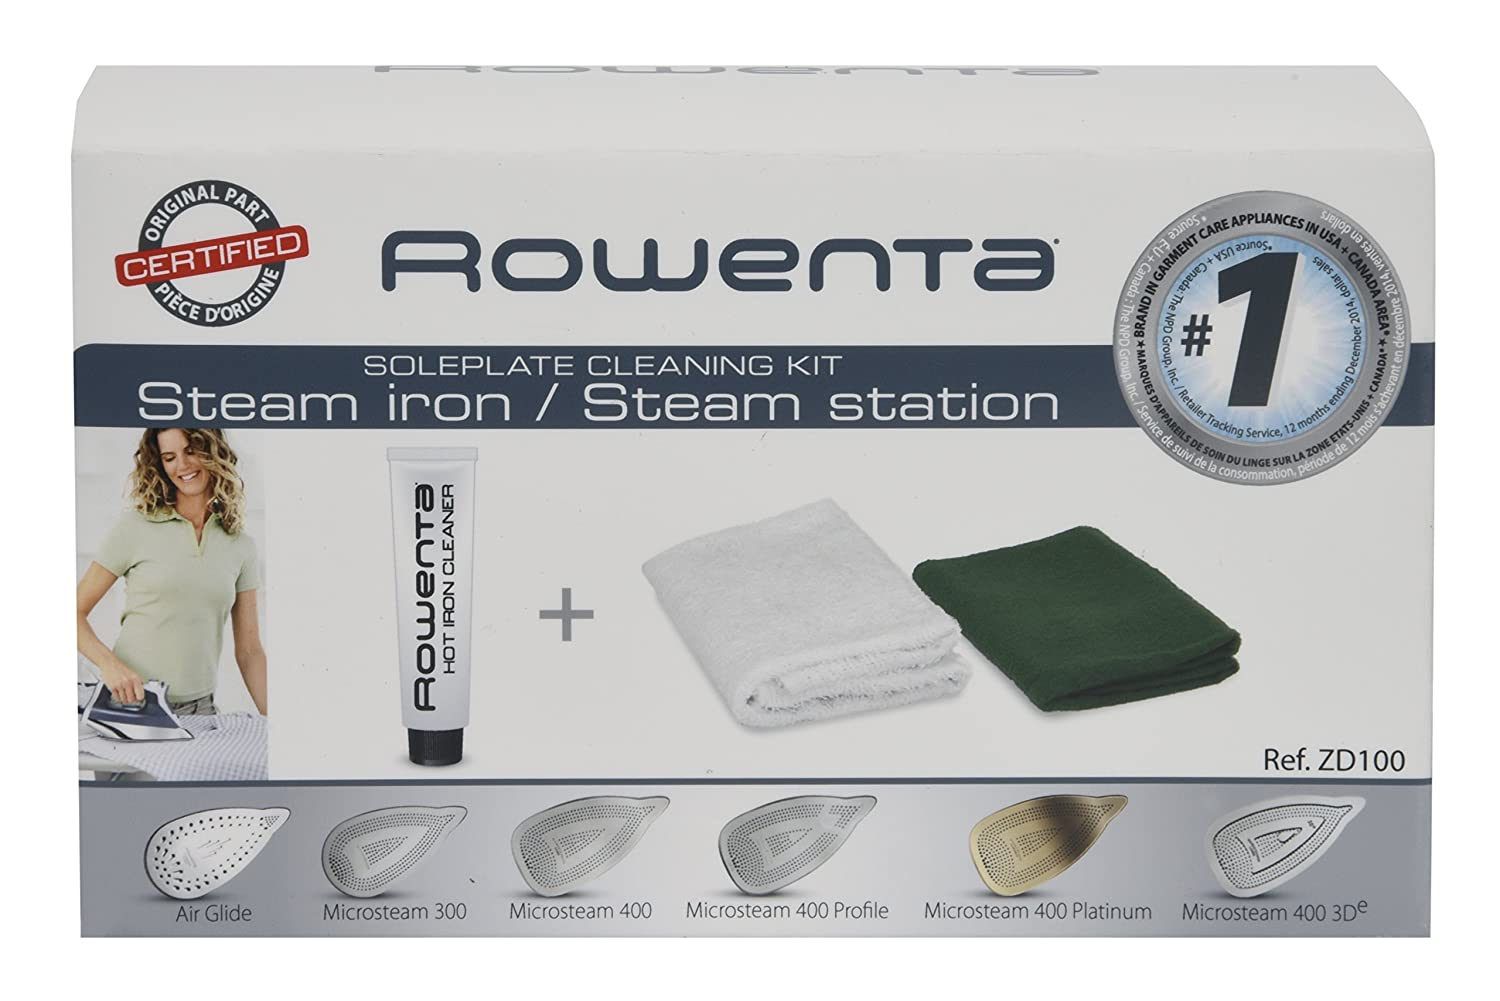 Rowenta ZD100 Non-Toxic Stainless Steel Soleplate Cleaner Kit for Steam Irons Groupe SEB 8100000470